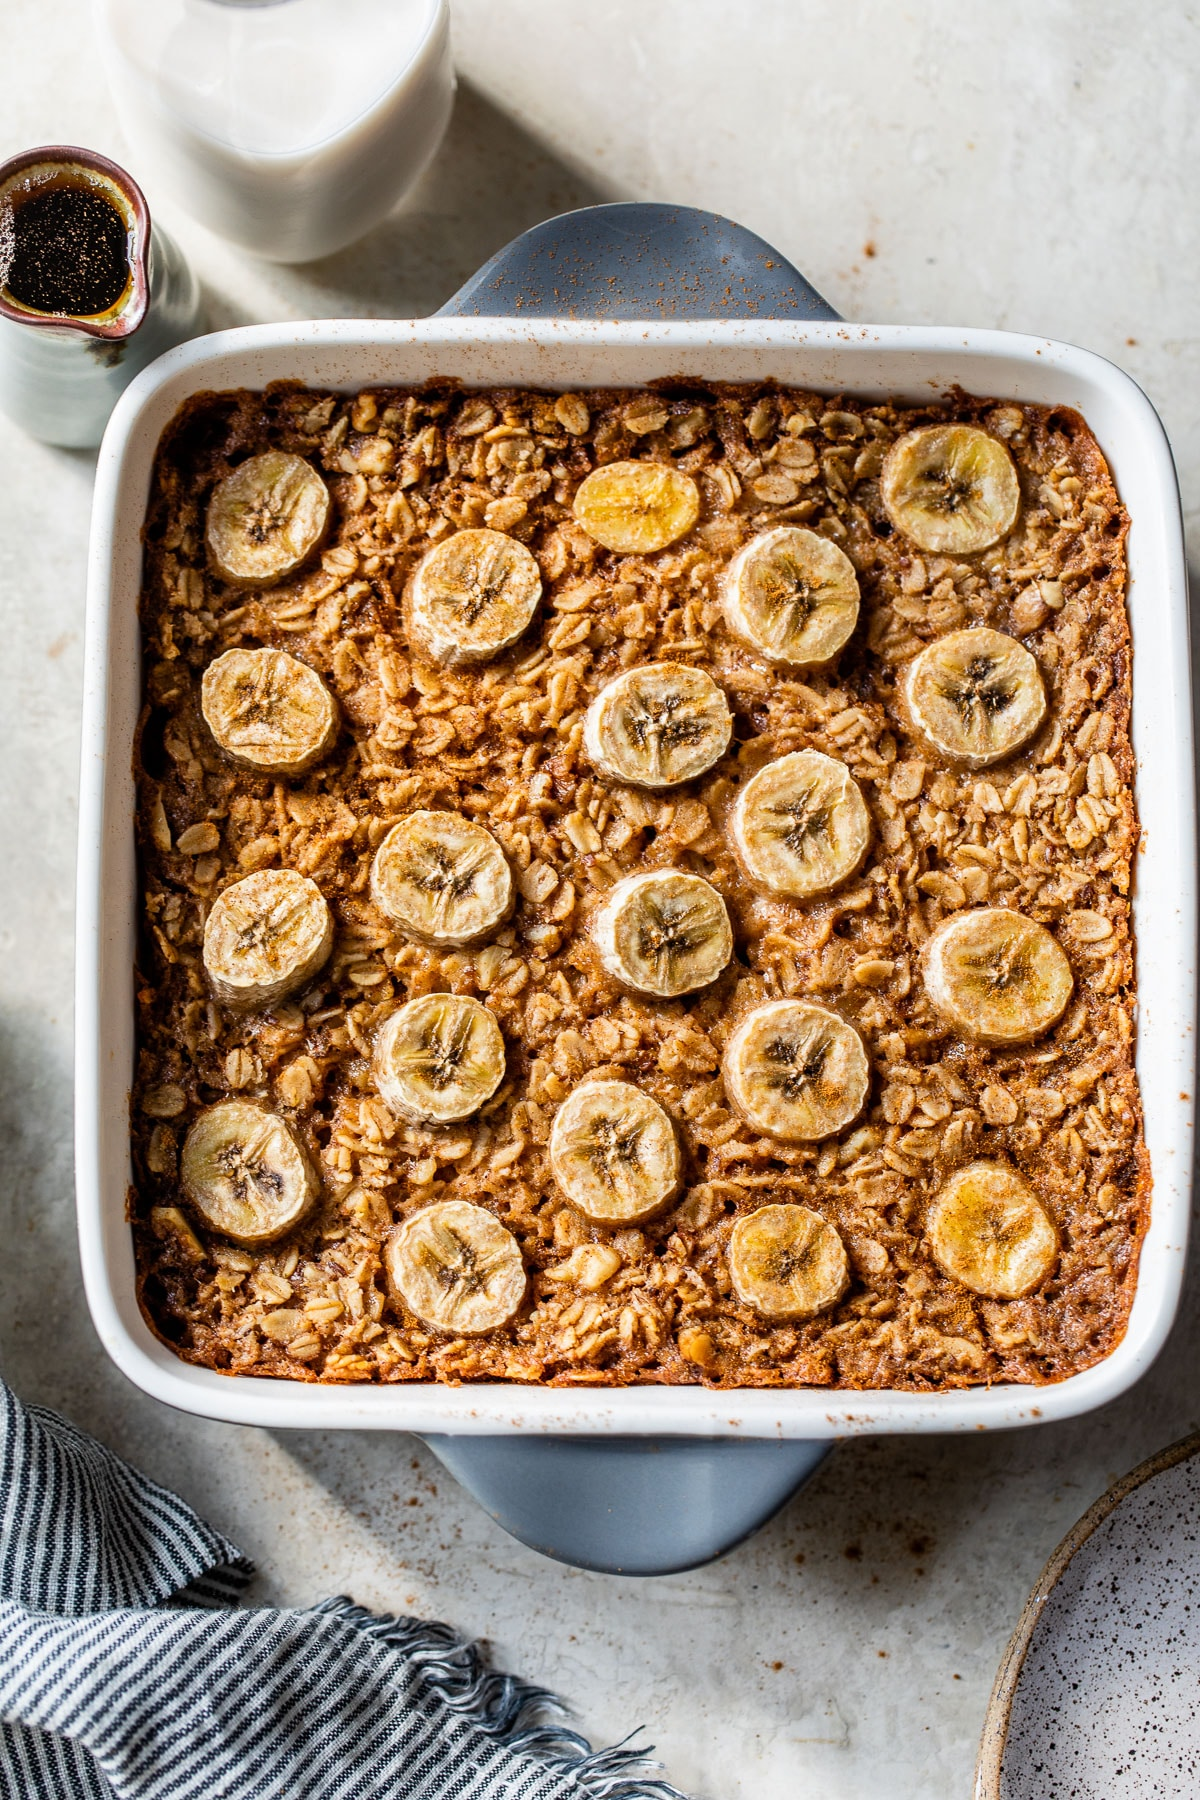 baked oatmeal with banana in a square baking dish